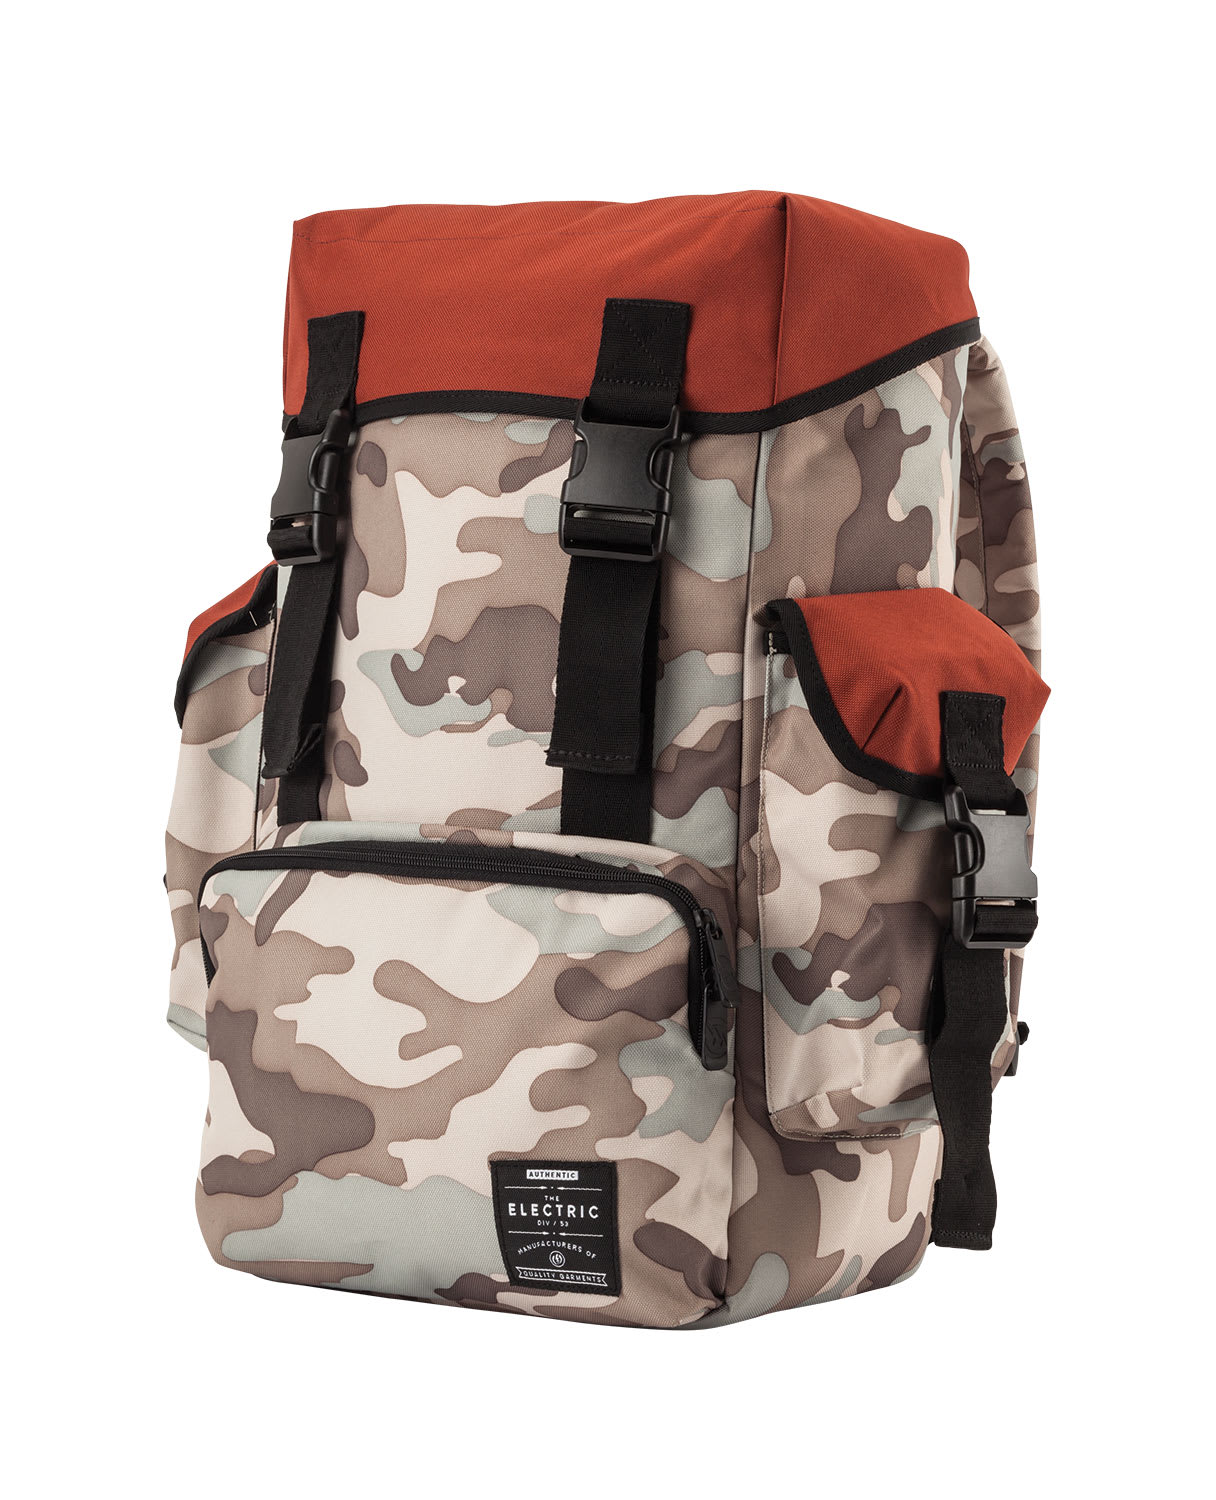 Electric MK4 Backpack Camo 25L